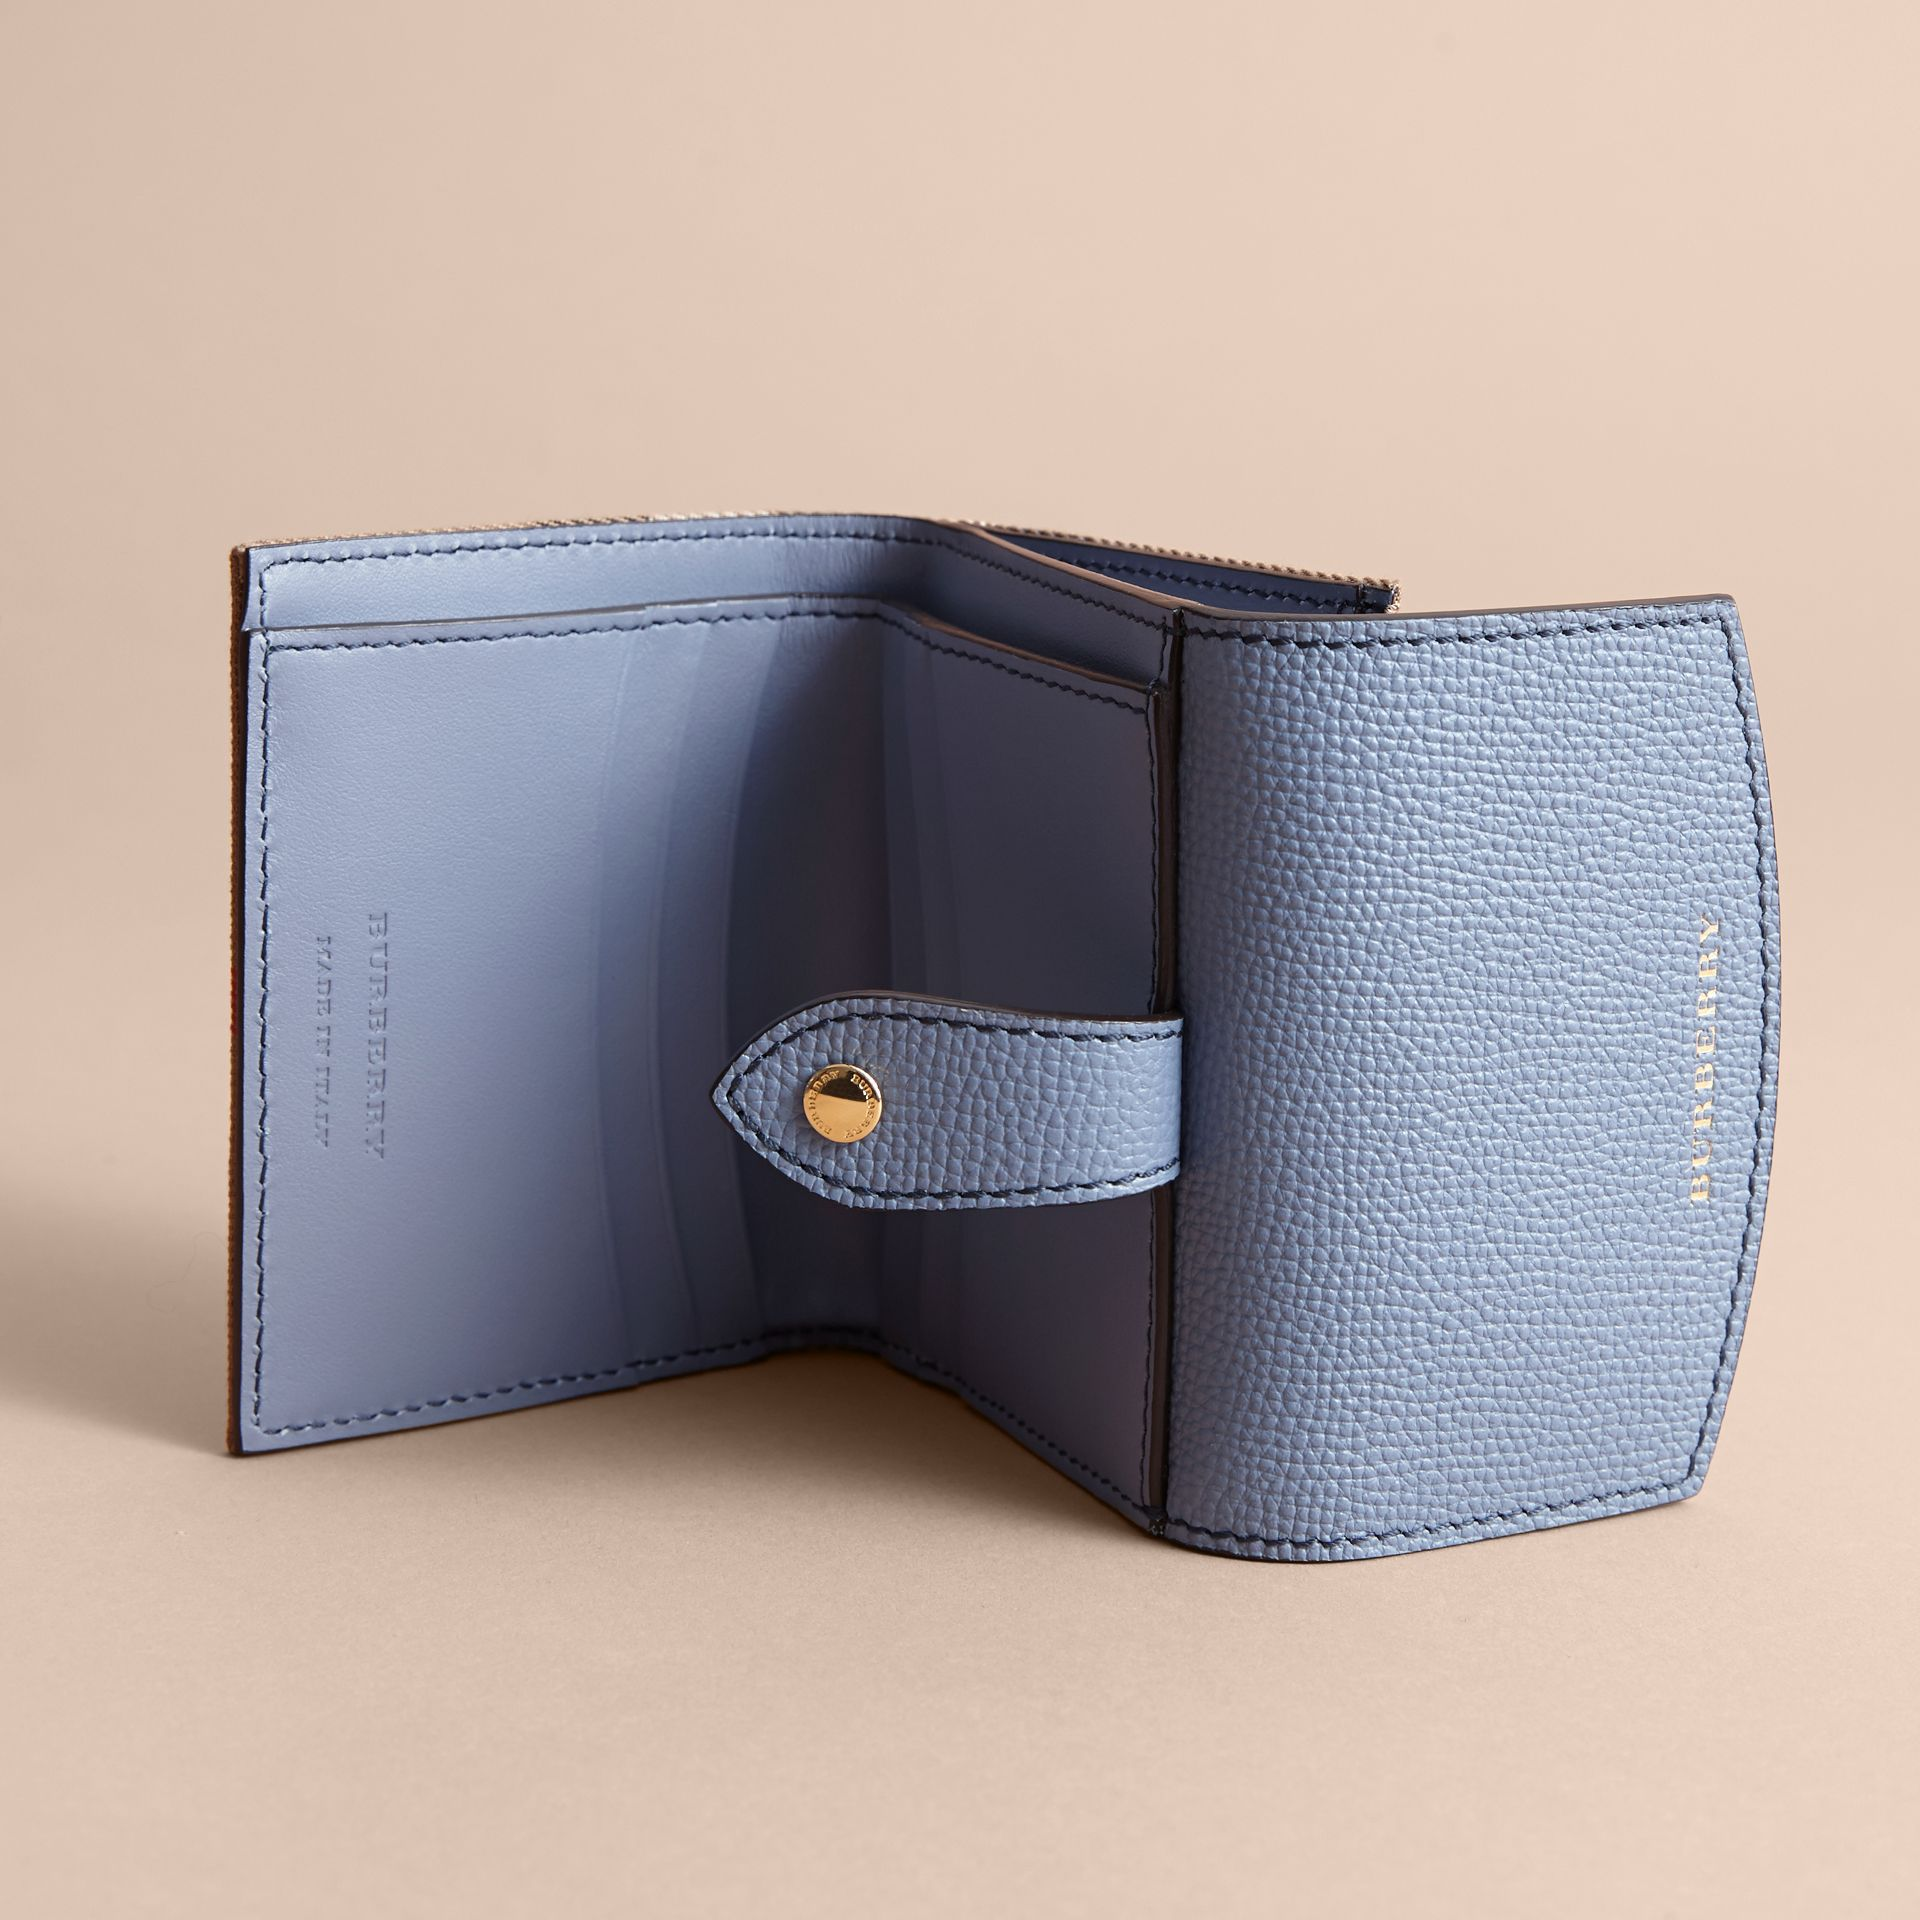 House Check and Leather Wallet in Slate Blue - Women | Burberry United Kingdom - gallery image 5